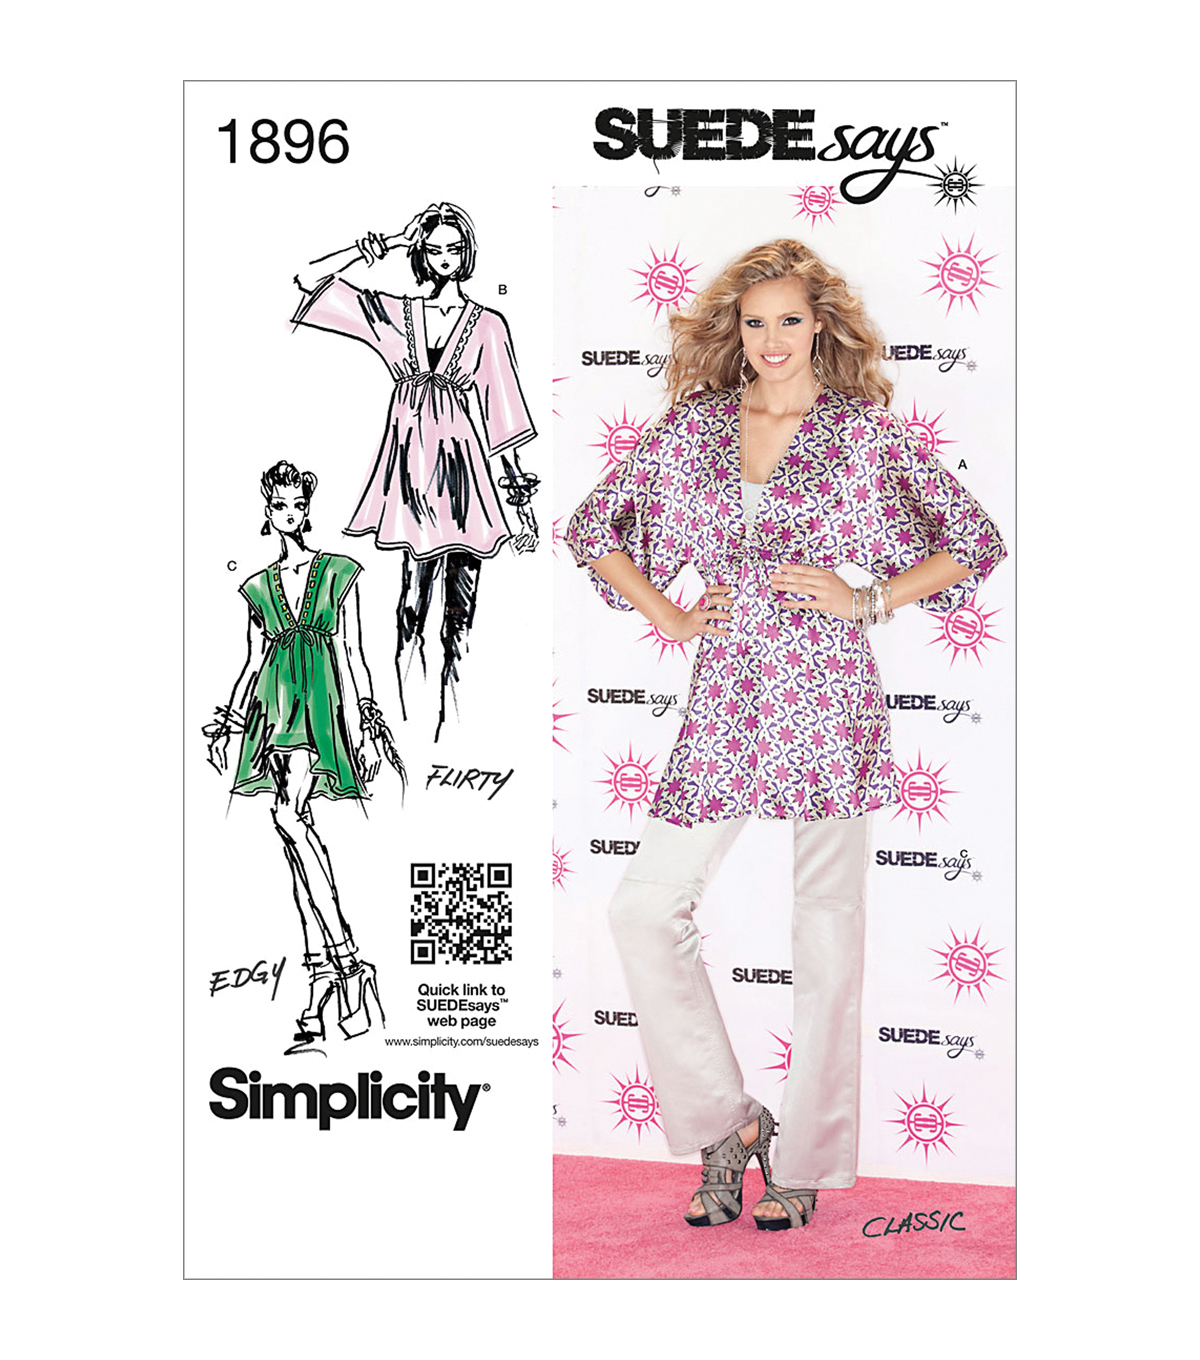 Simplicity Patterns Us1896A-Simplicity Misses Tops Vests-Xxs-Xs-S-M-L-Xl-Xxl